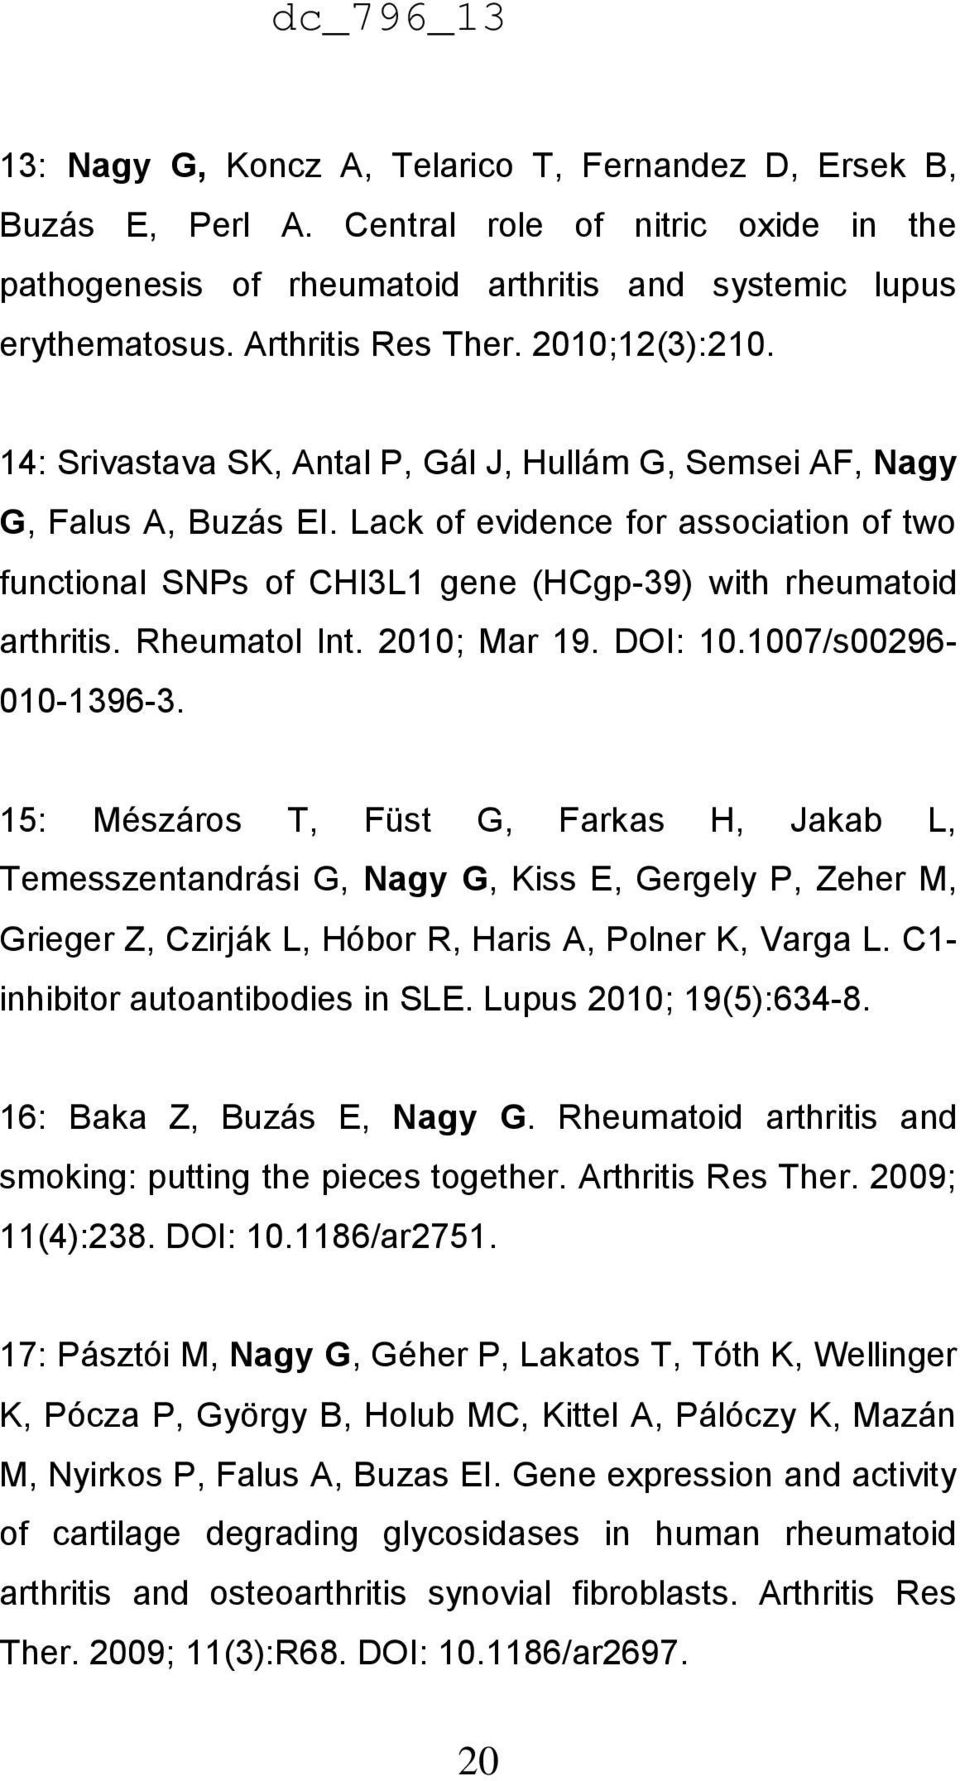 Lack of evidence for association of two functional SNPs of CHI3L1 gene (HCgp-39) with rheumatoid arthritis. Rheumatol Int. 2010; Mar 19. DOI: 10.1007/s00296-010-1396-3.